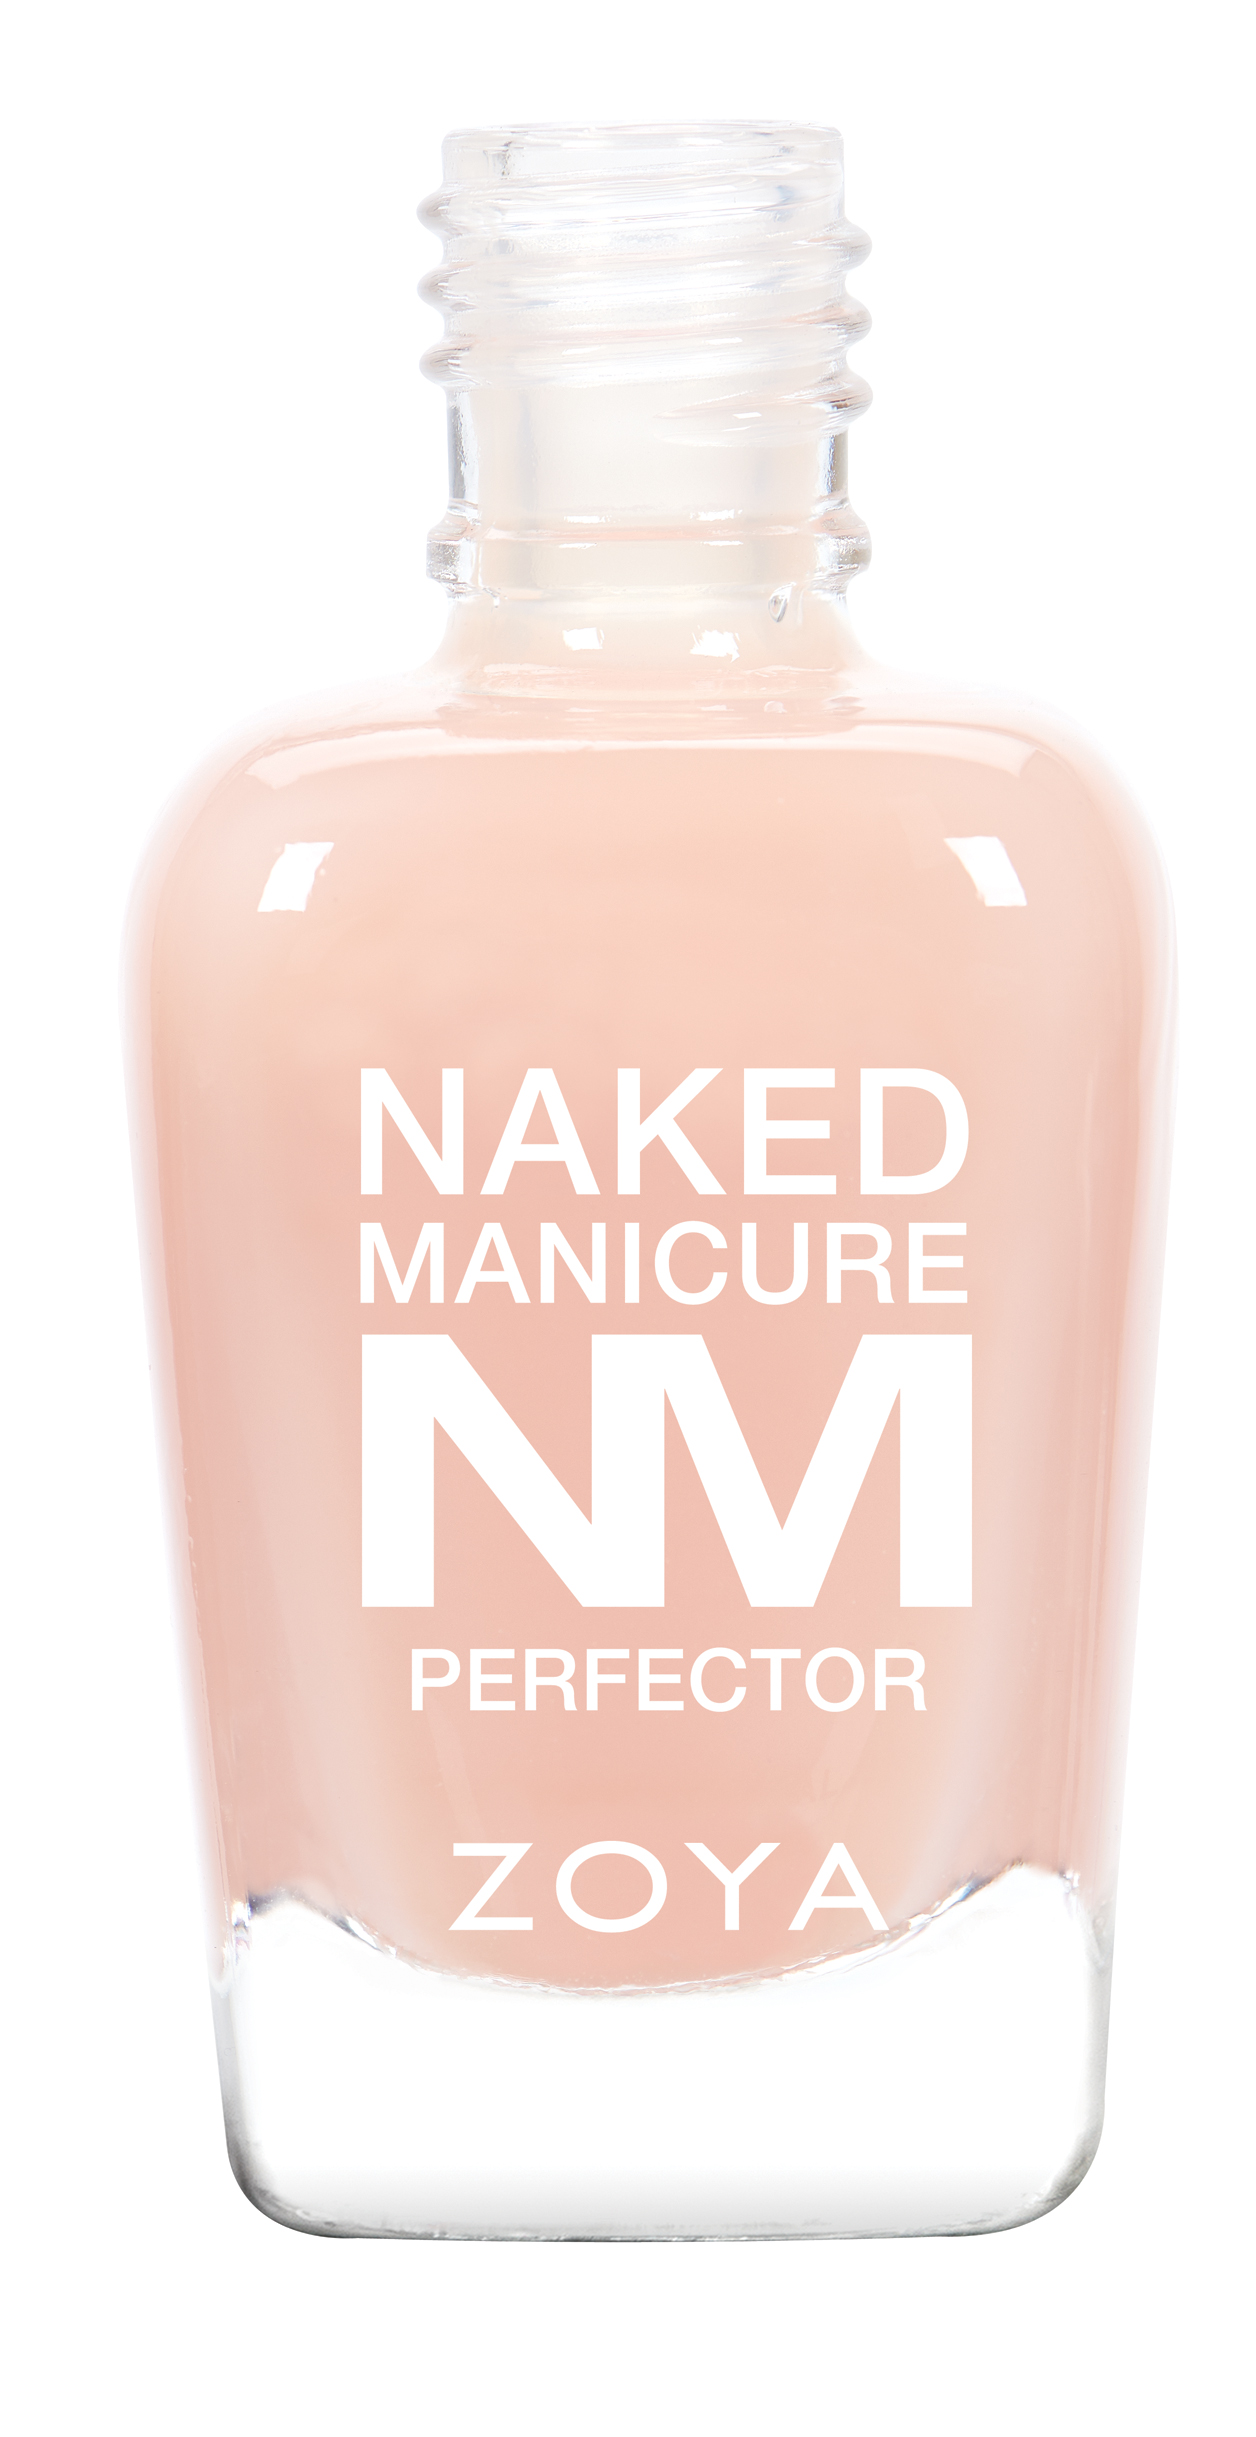 Zoya Naked Manicure Buff Perfector product-reel